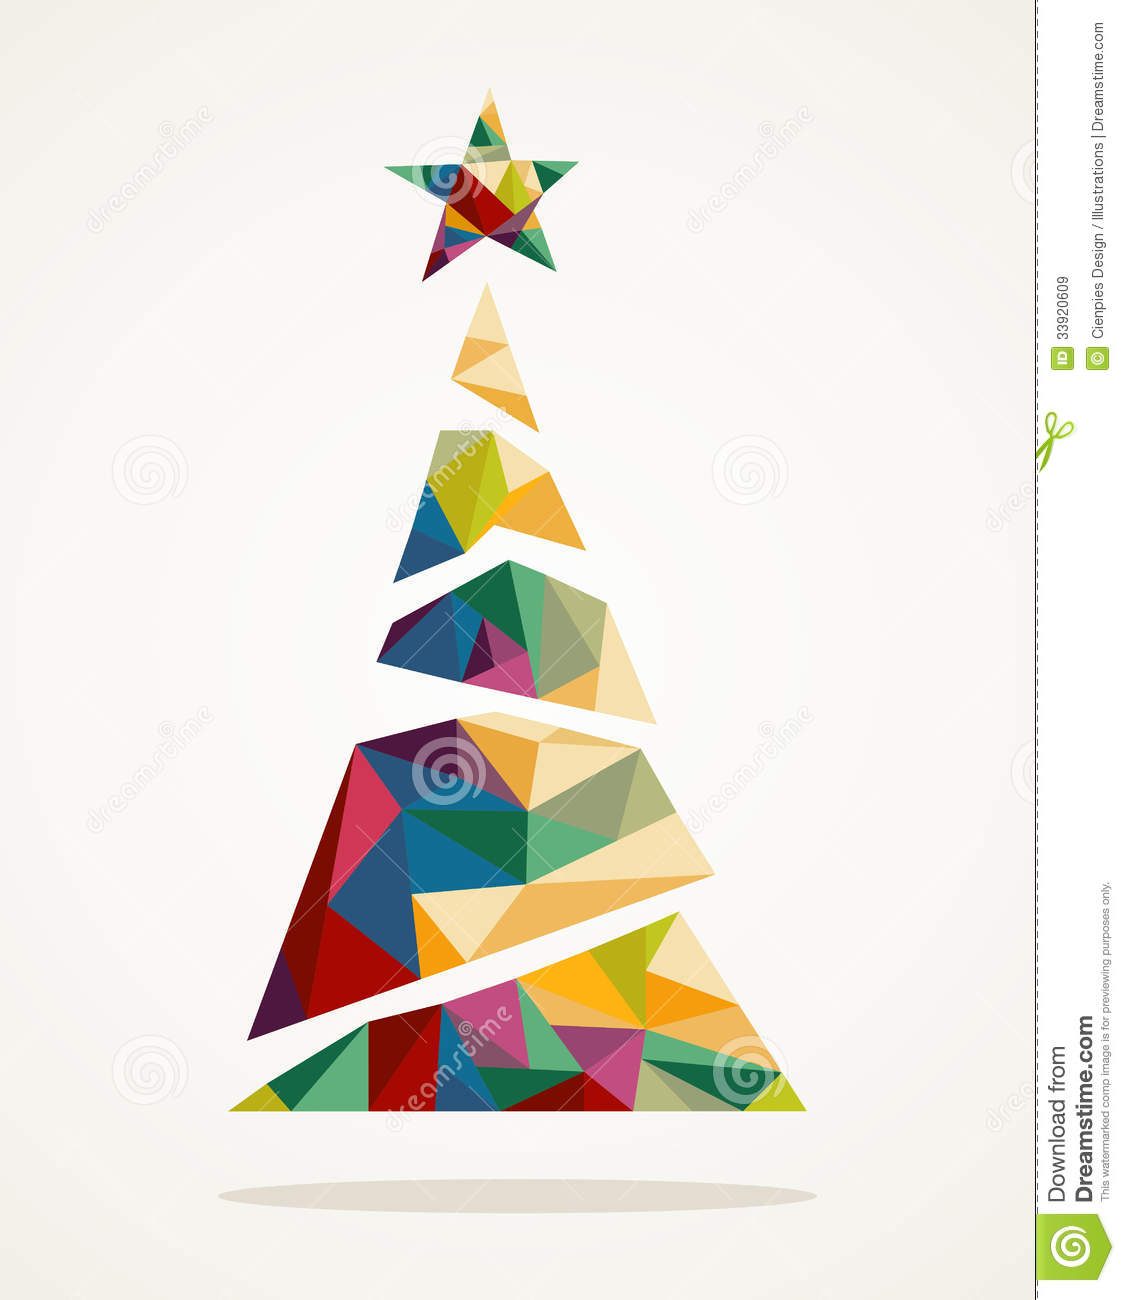 Merry Christmas Trendy Abstract Tree EPS10 File Royalty